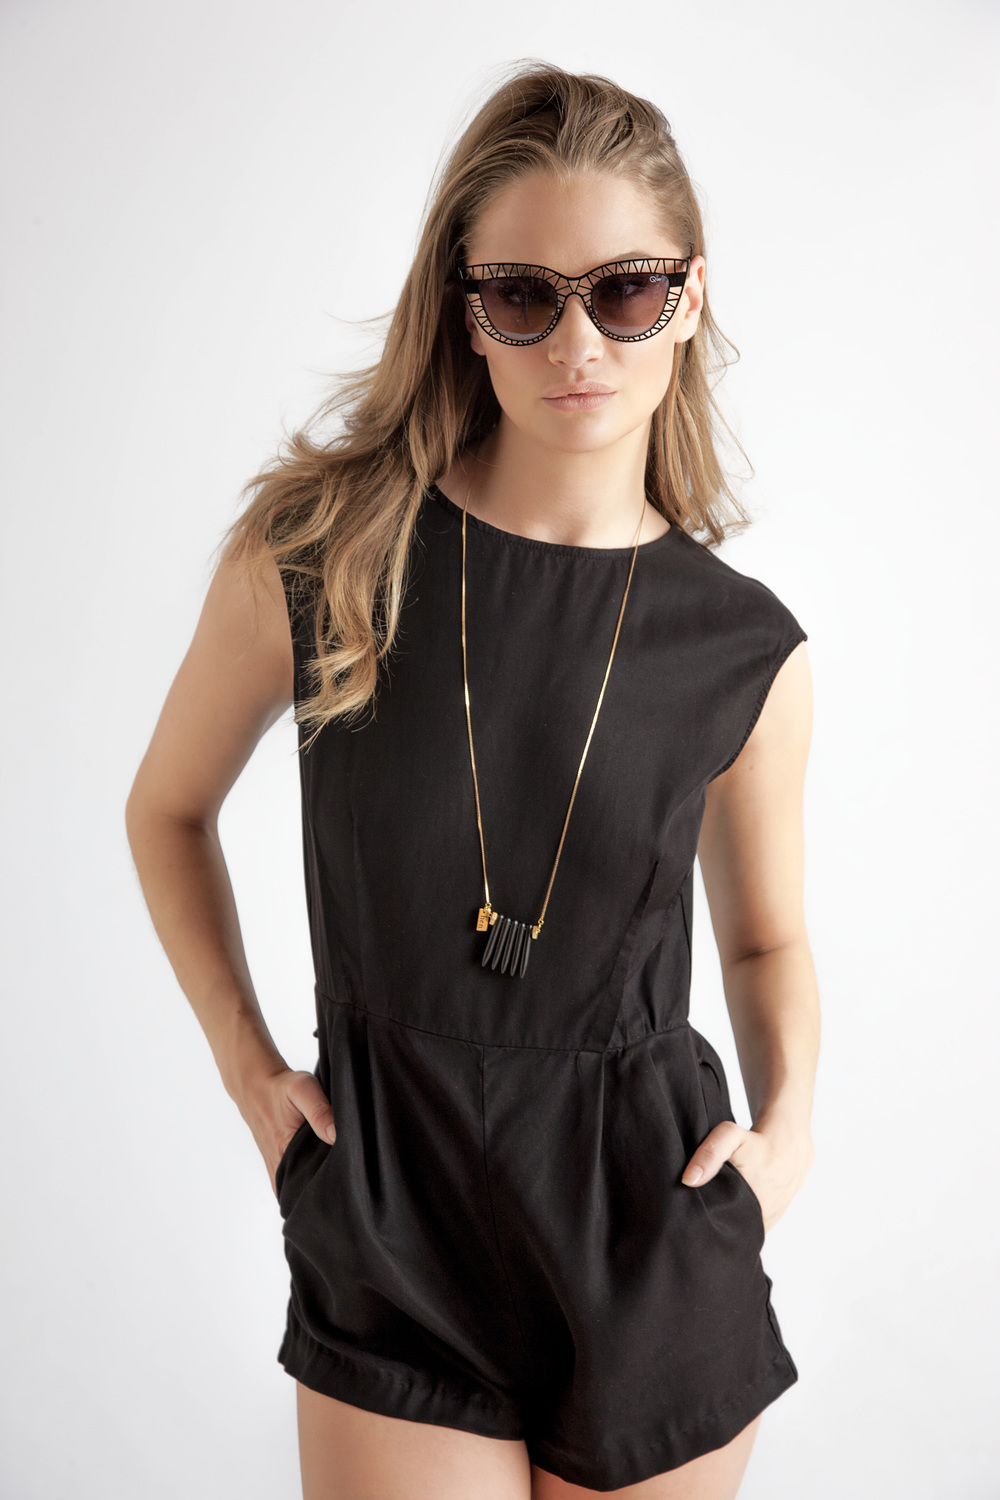 Short Romper by Sam & Lavi $198 | Sunglasses by Quay $55 | Necklace by Hen $49